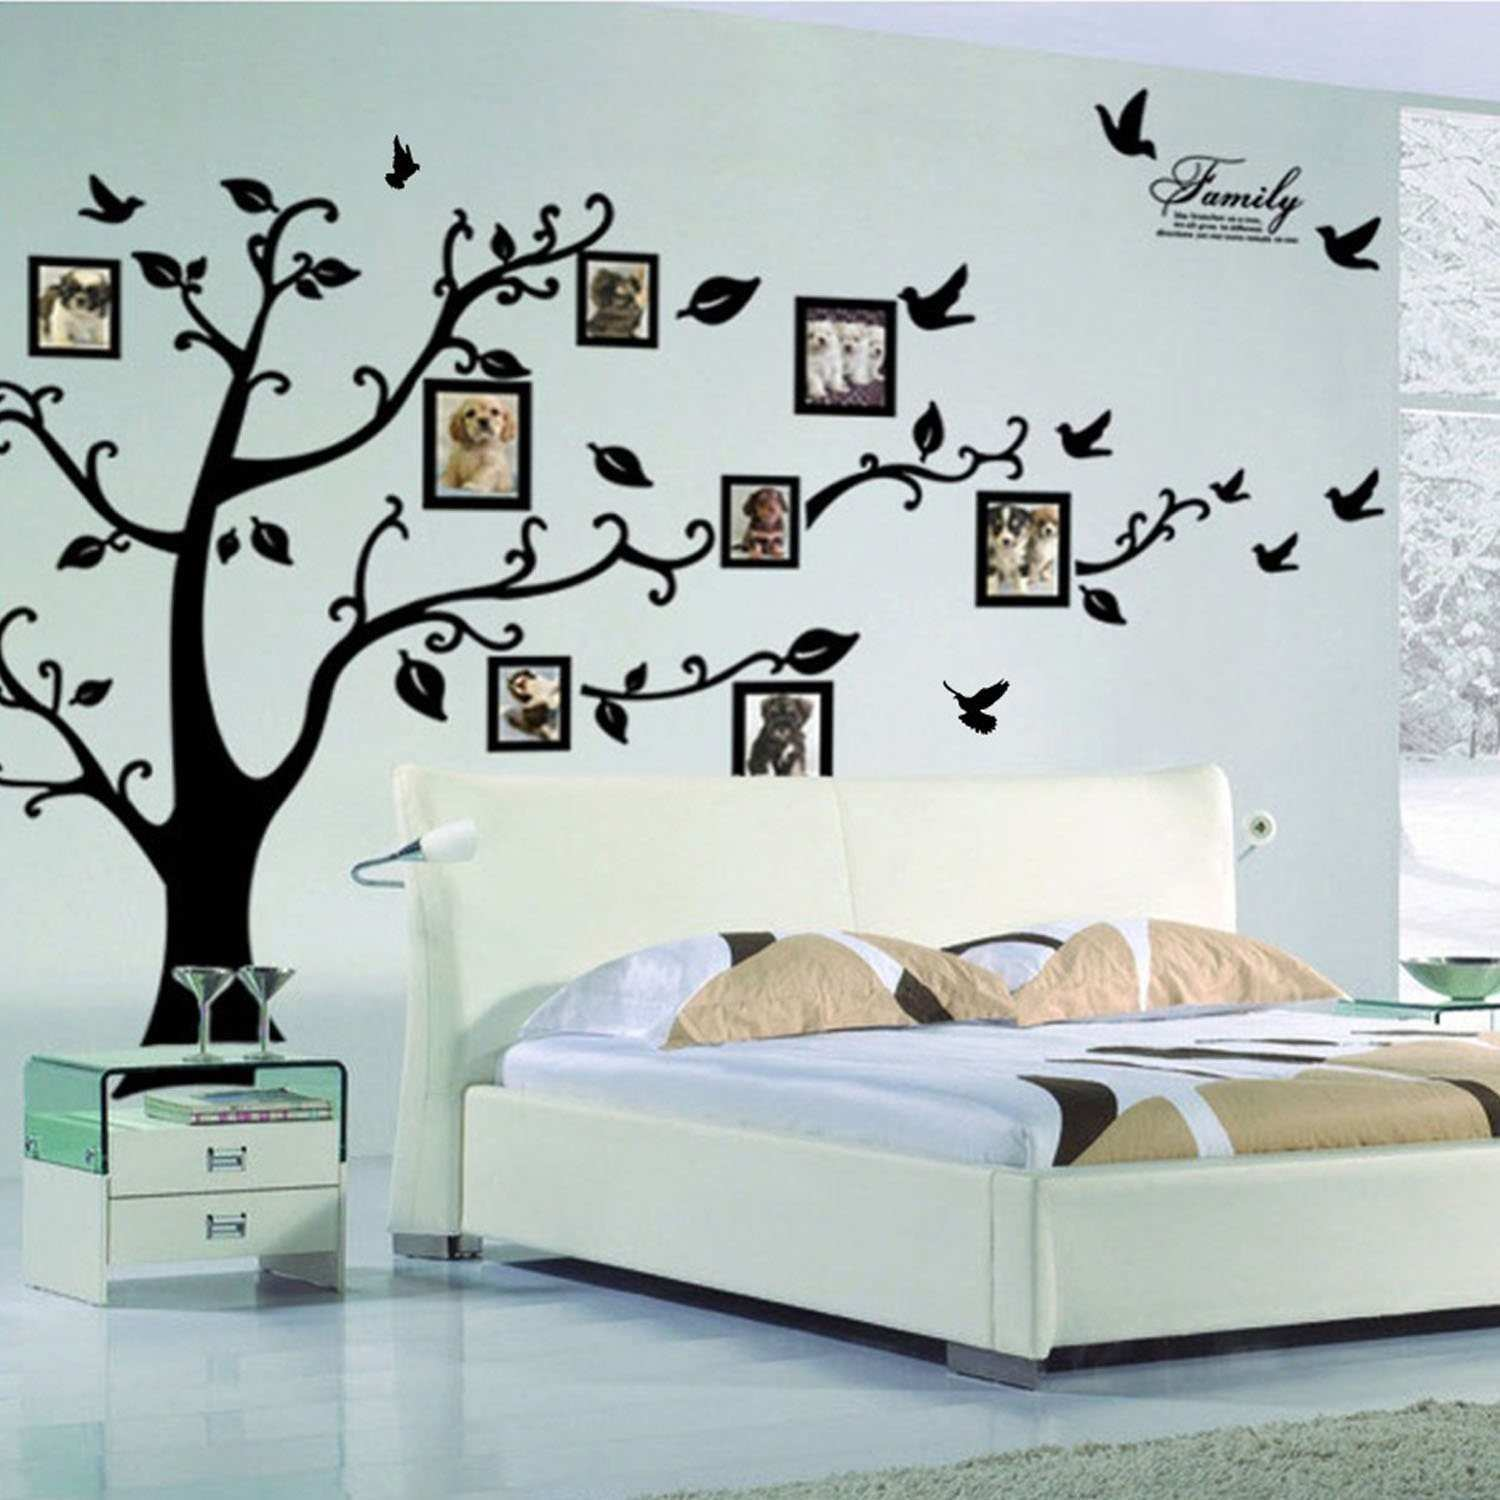 Make Your Own Wall Sticker Amazon